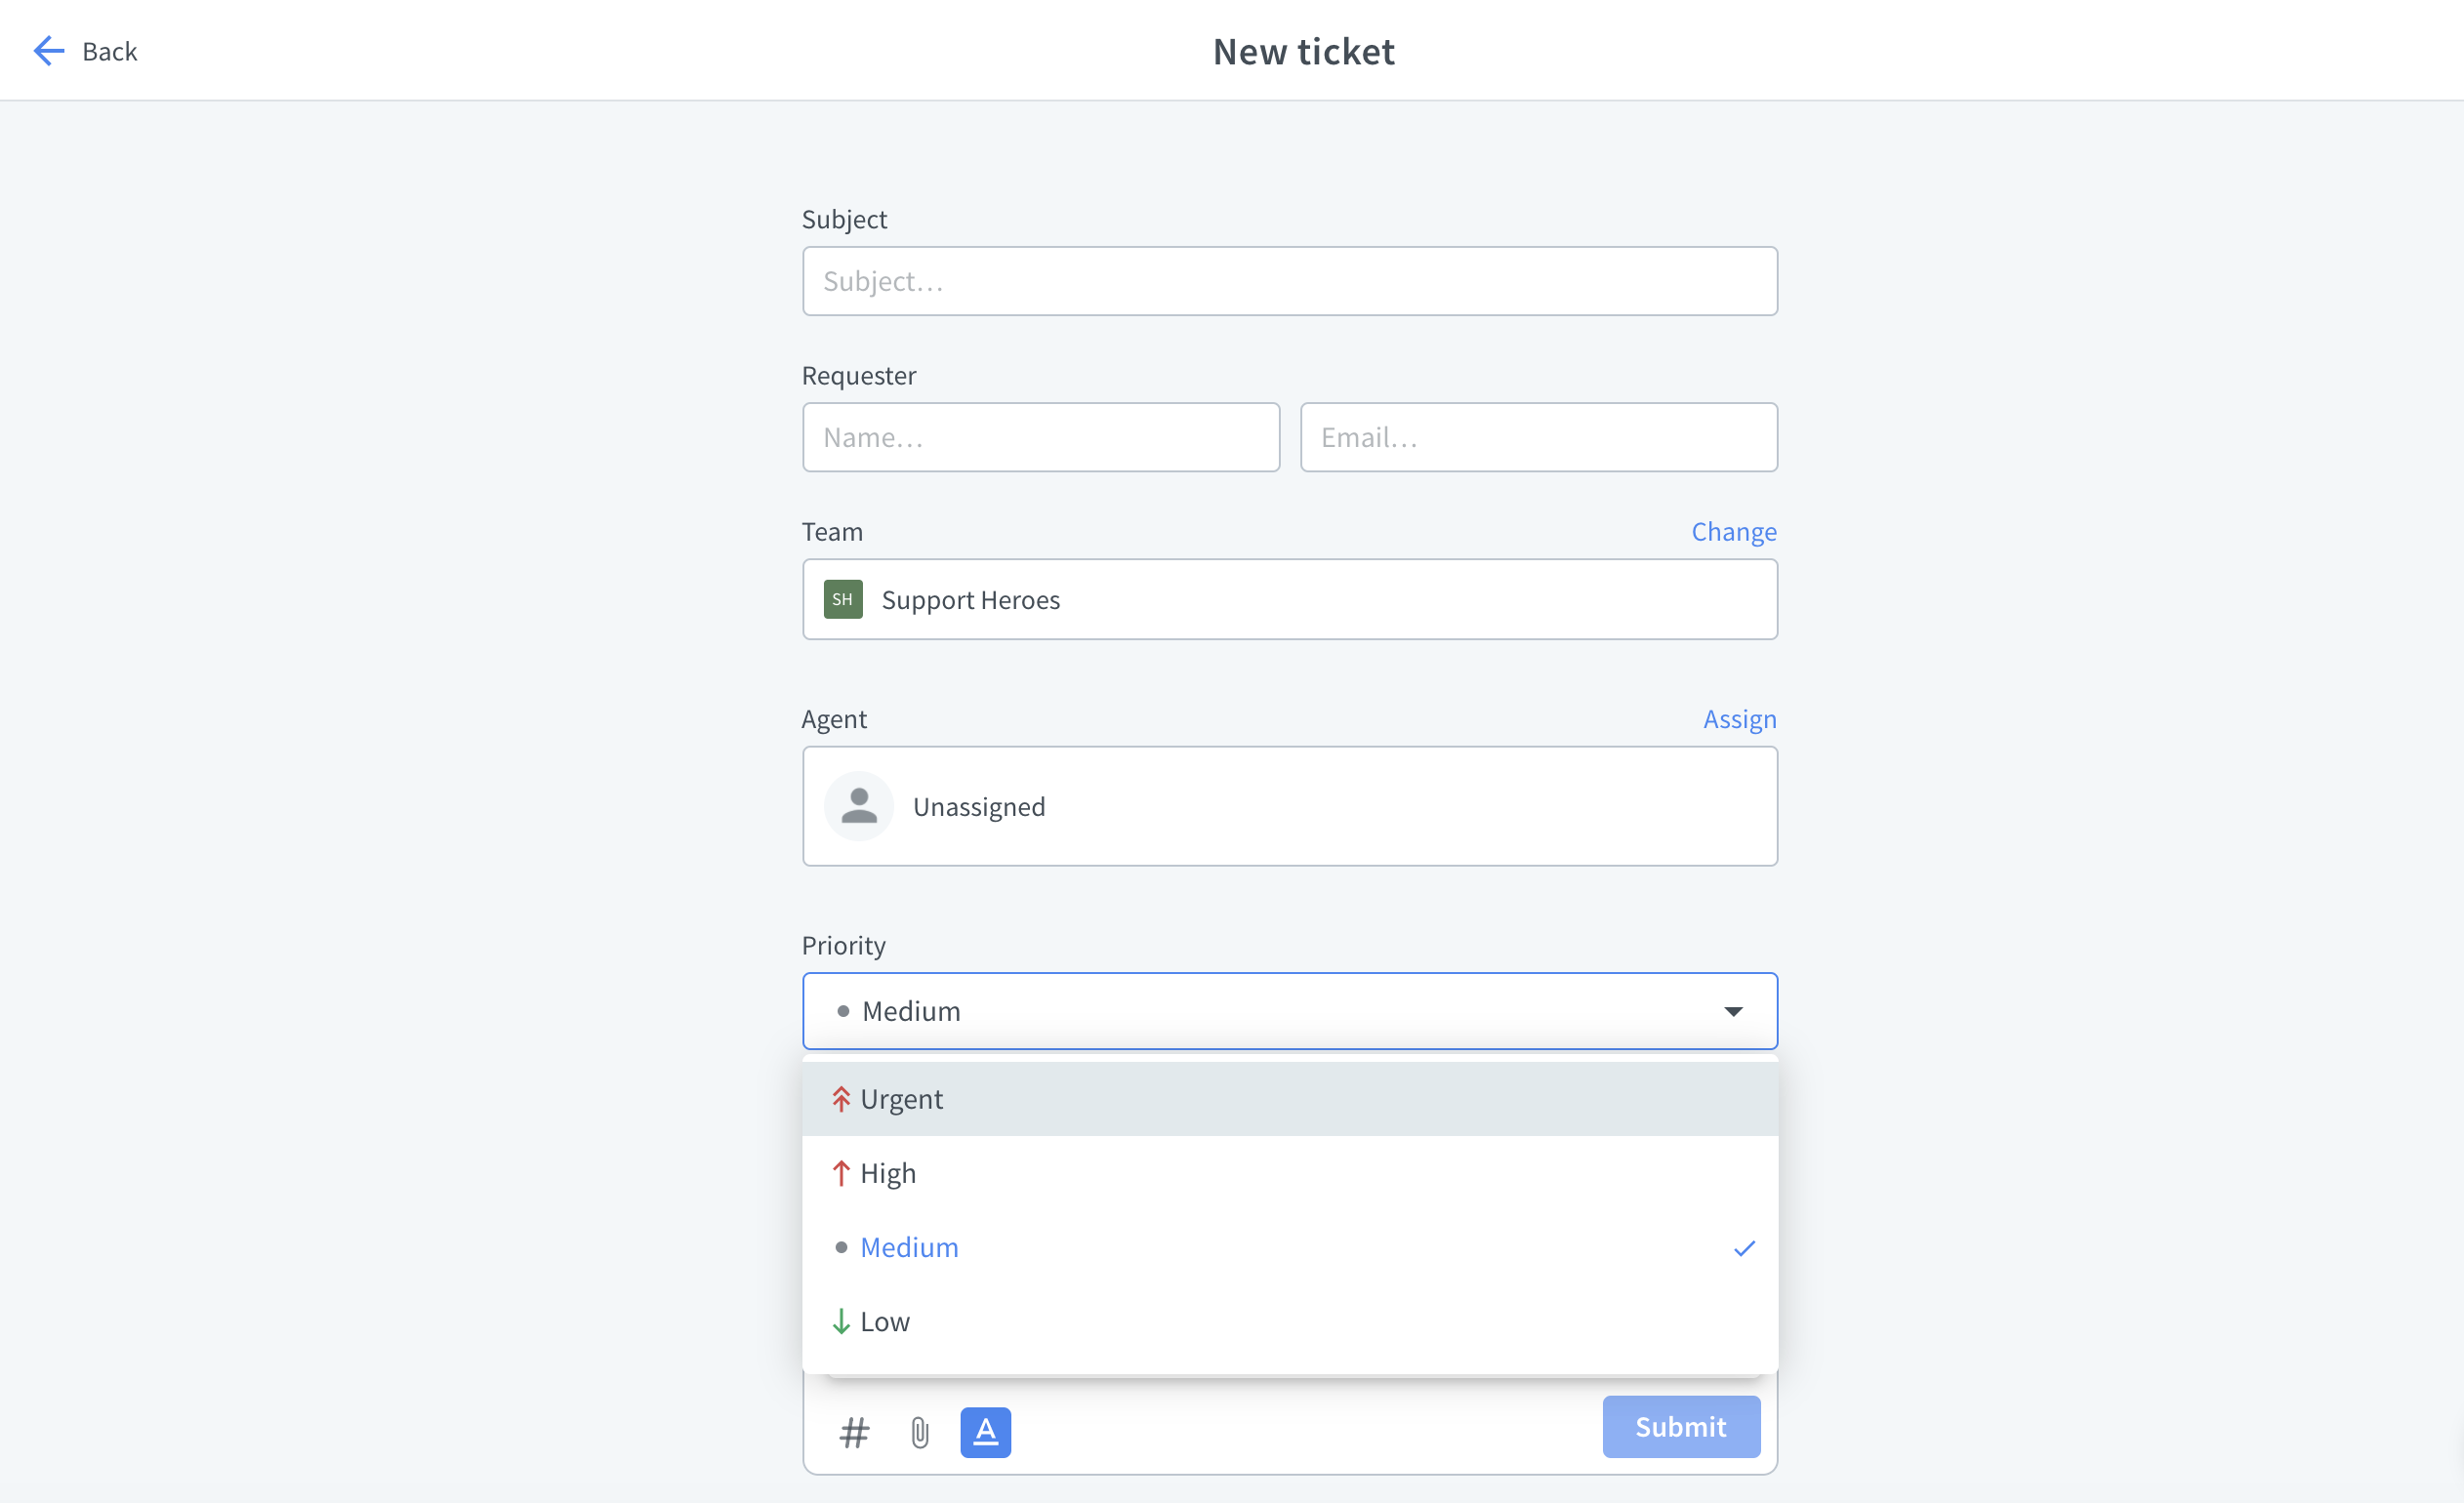 Priority setting while creating a new ticket